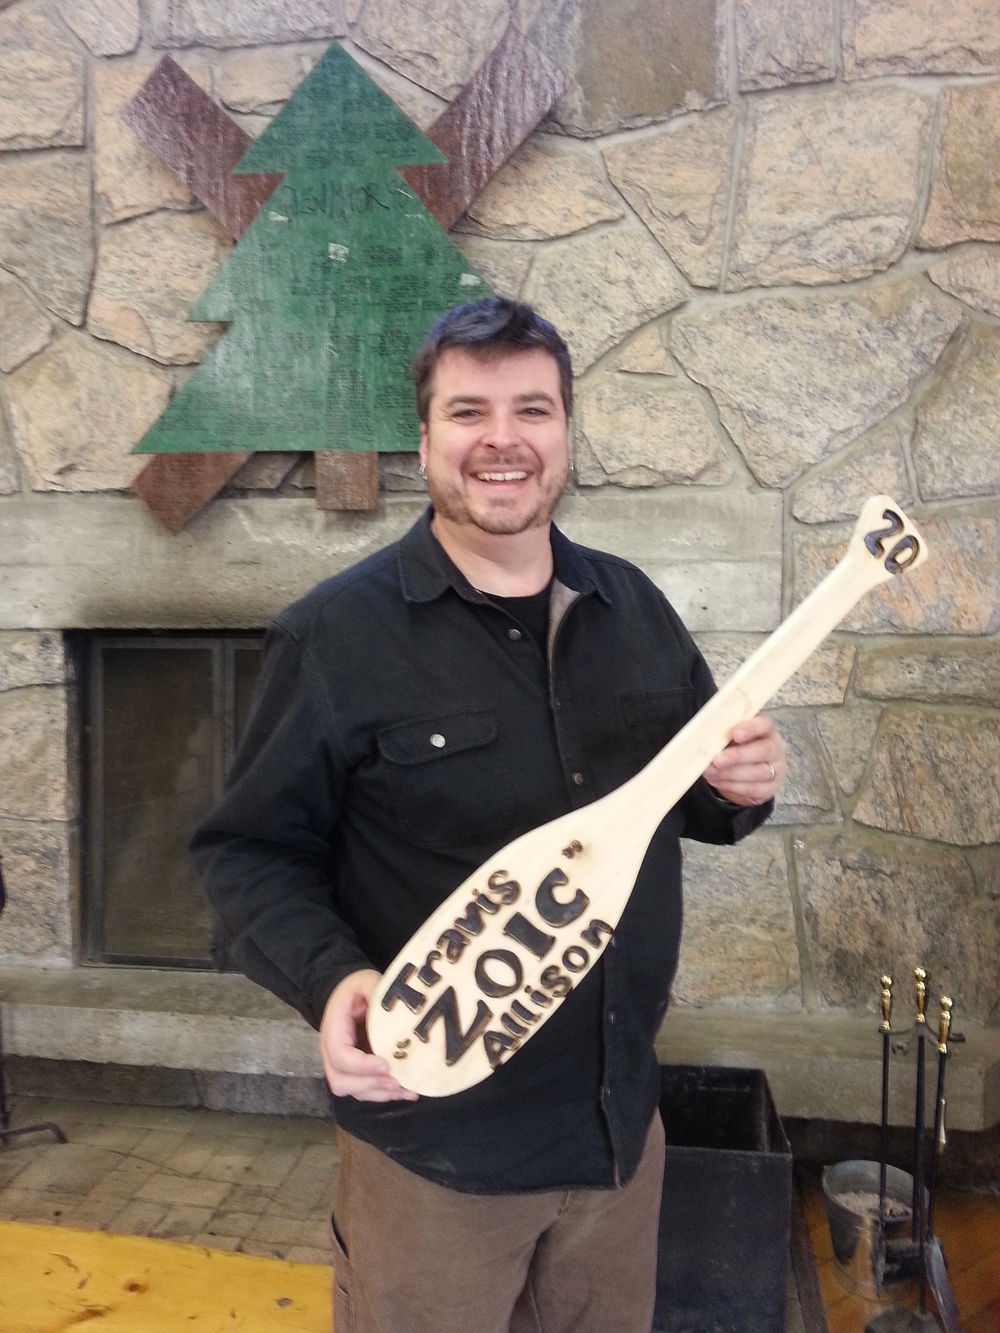 Travis Allison receives his  20 Year Paddle  from Cairn